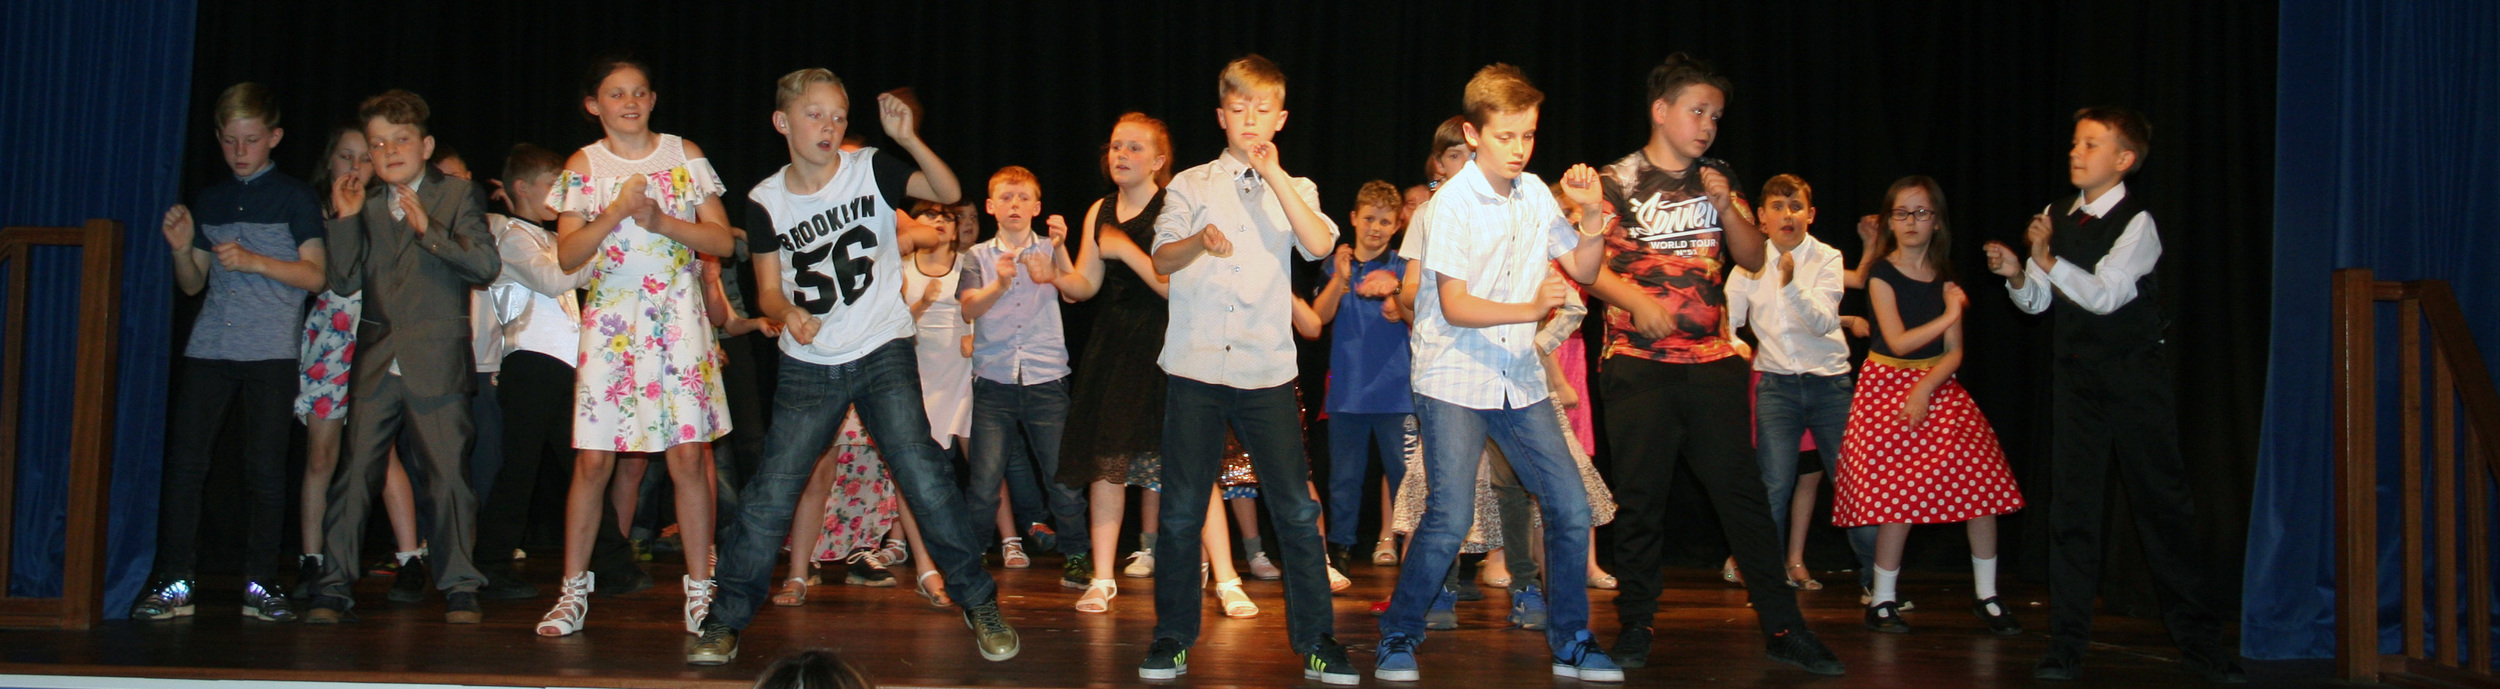 Primary Dance Competition 2016 040.JPG